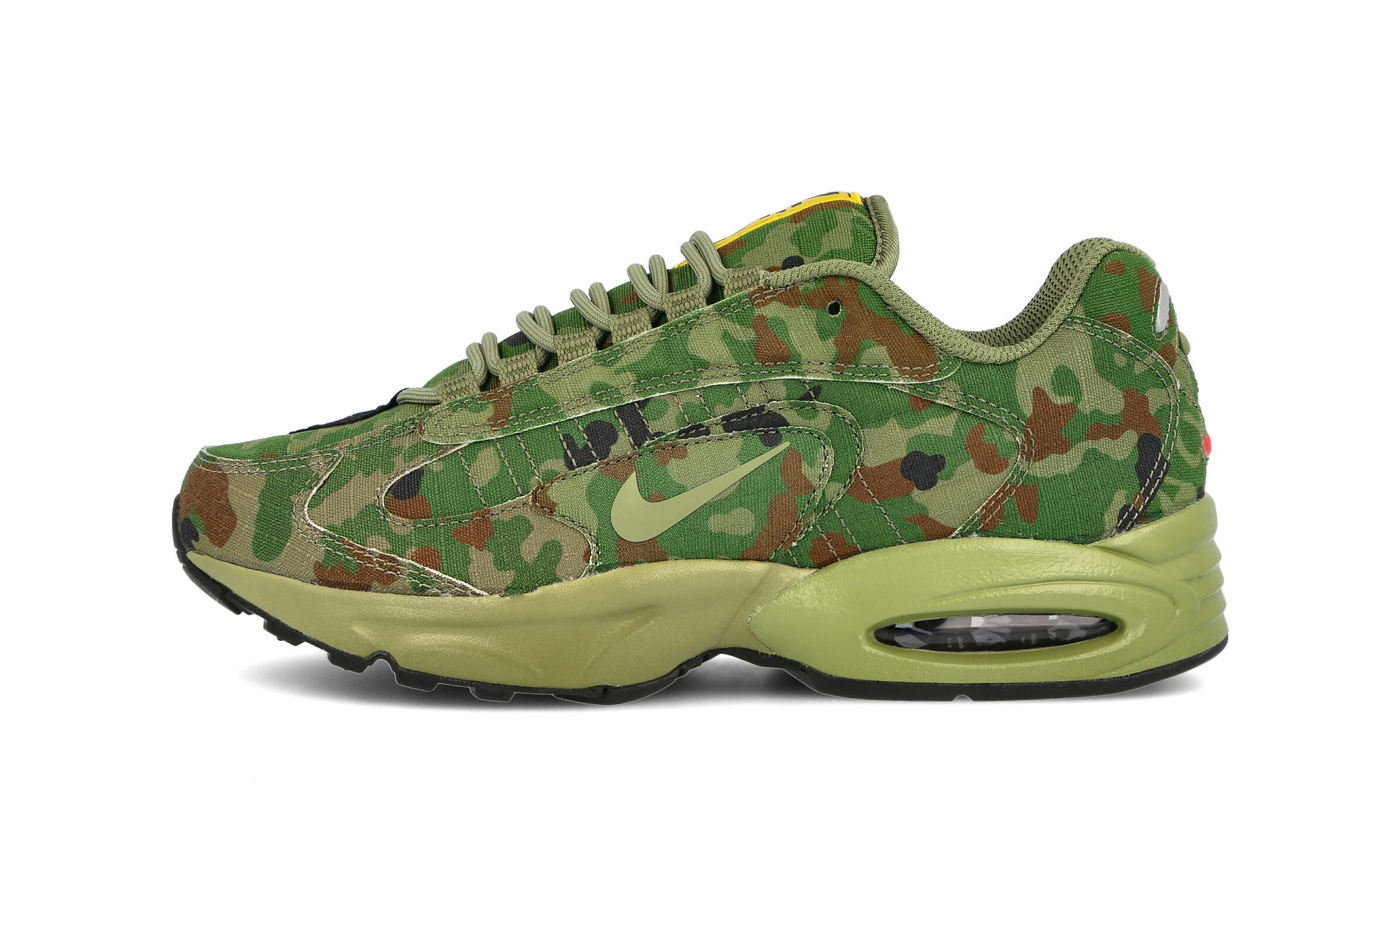 Nike Air Max Triax 96 SP Safari Thermal Green LT Chocolate Black frogskin camo CT5543 300 menswear streetwear shoes sneakers trainers runners spring summer 2020 collection